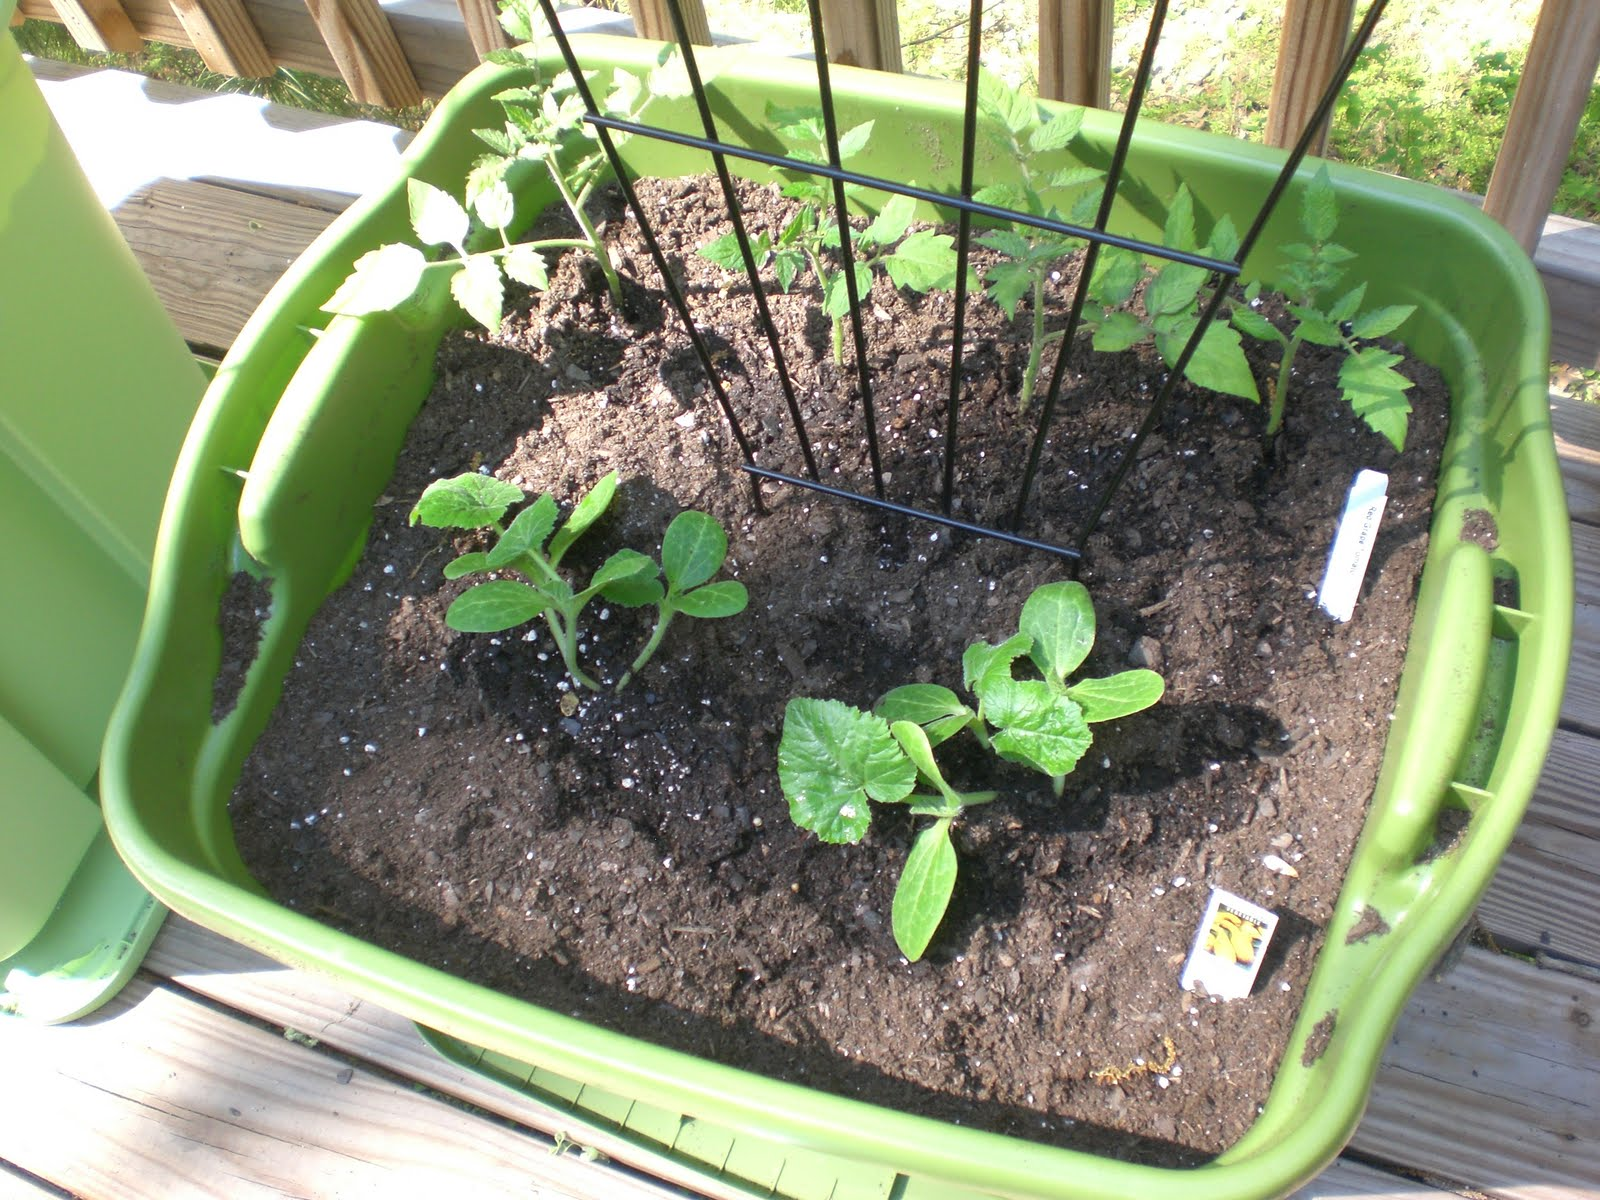 Back porch garden rubbermaid container garden - Soil for container vegetable gardening ...